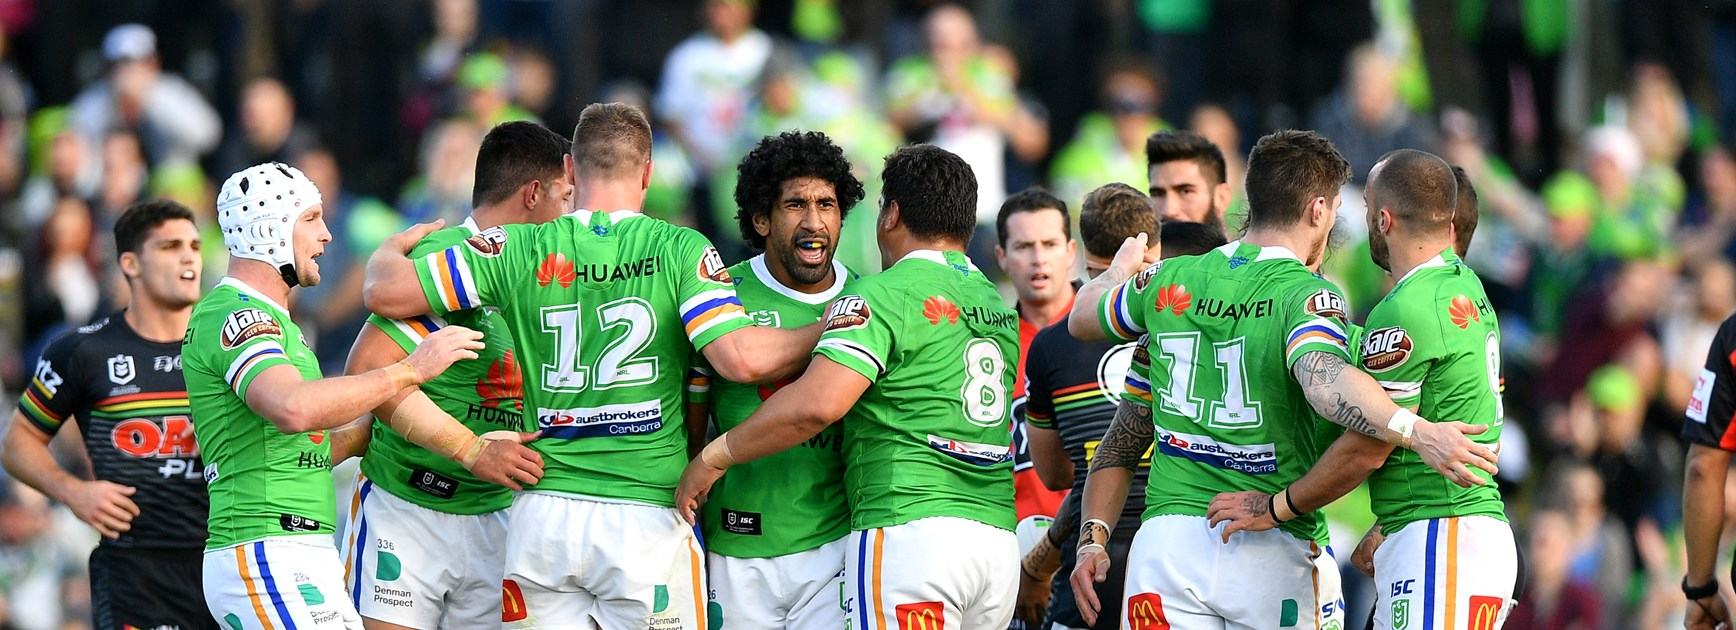 NRL Match Report: Raiders end Panthers win streak